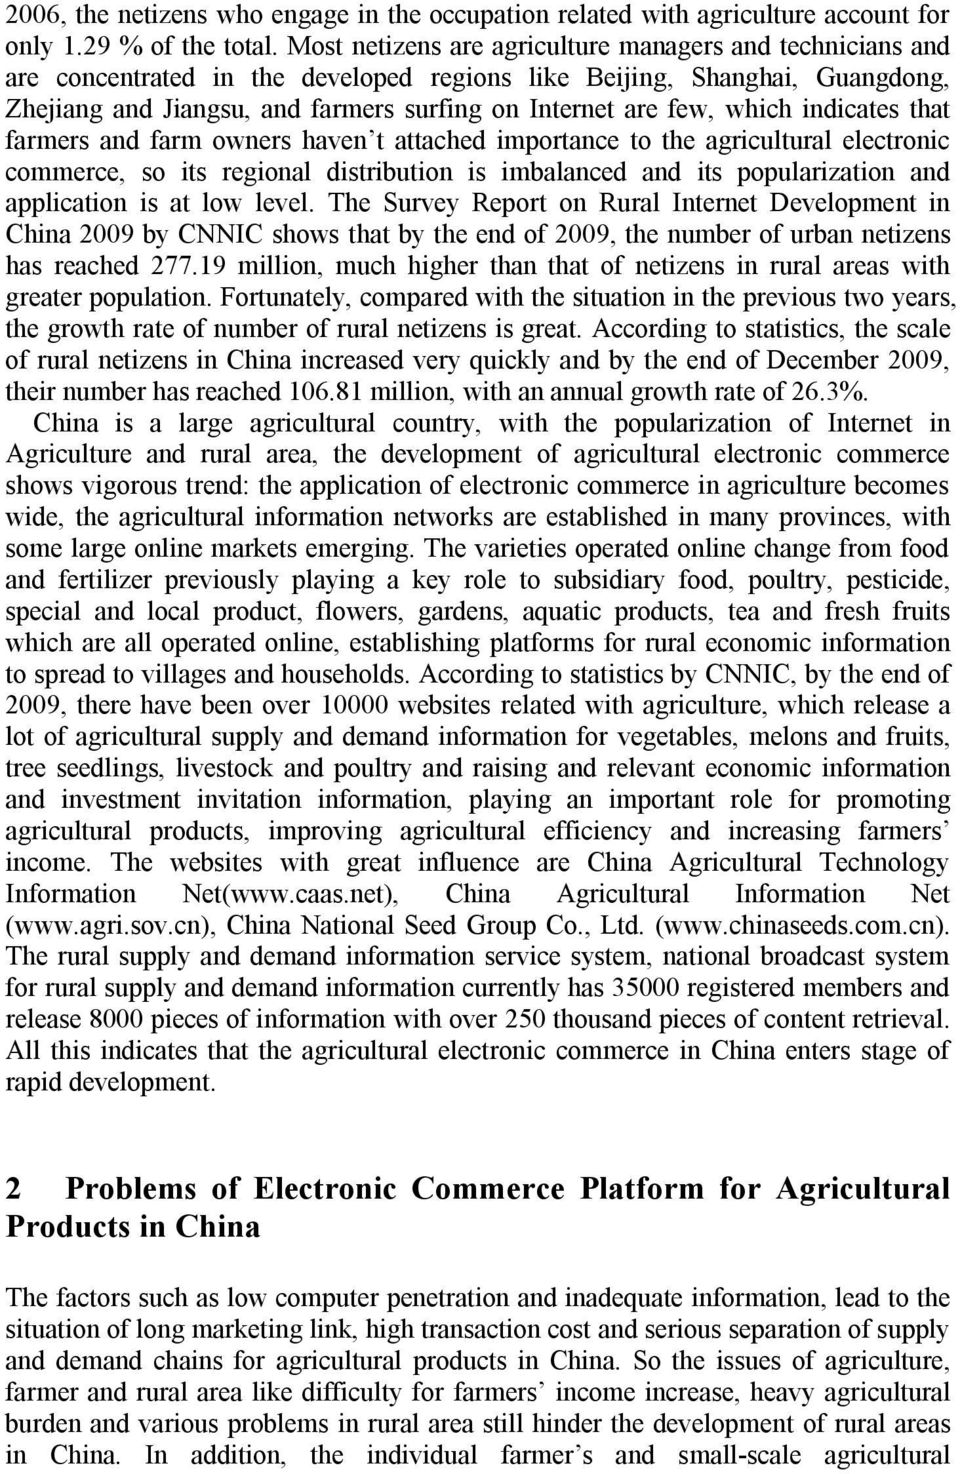 which indicates that farmers and farm owners haven t attached importance to the agricultural electronic commerce, so its regional distribution is imbalanced and its popularization and application is